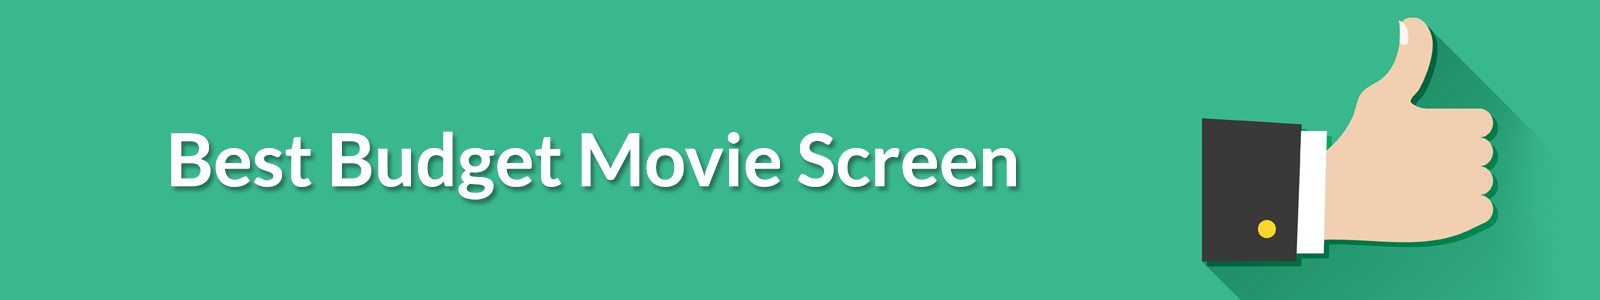 Budget Movie Screen Sub